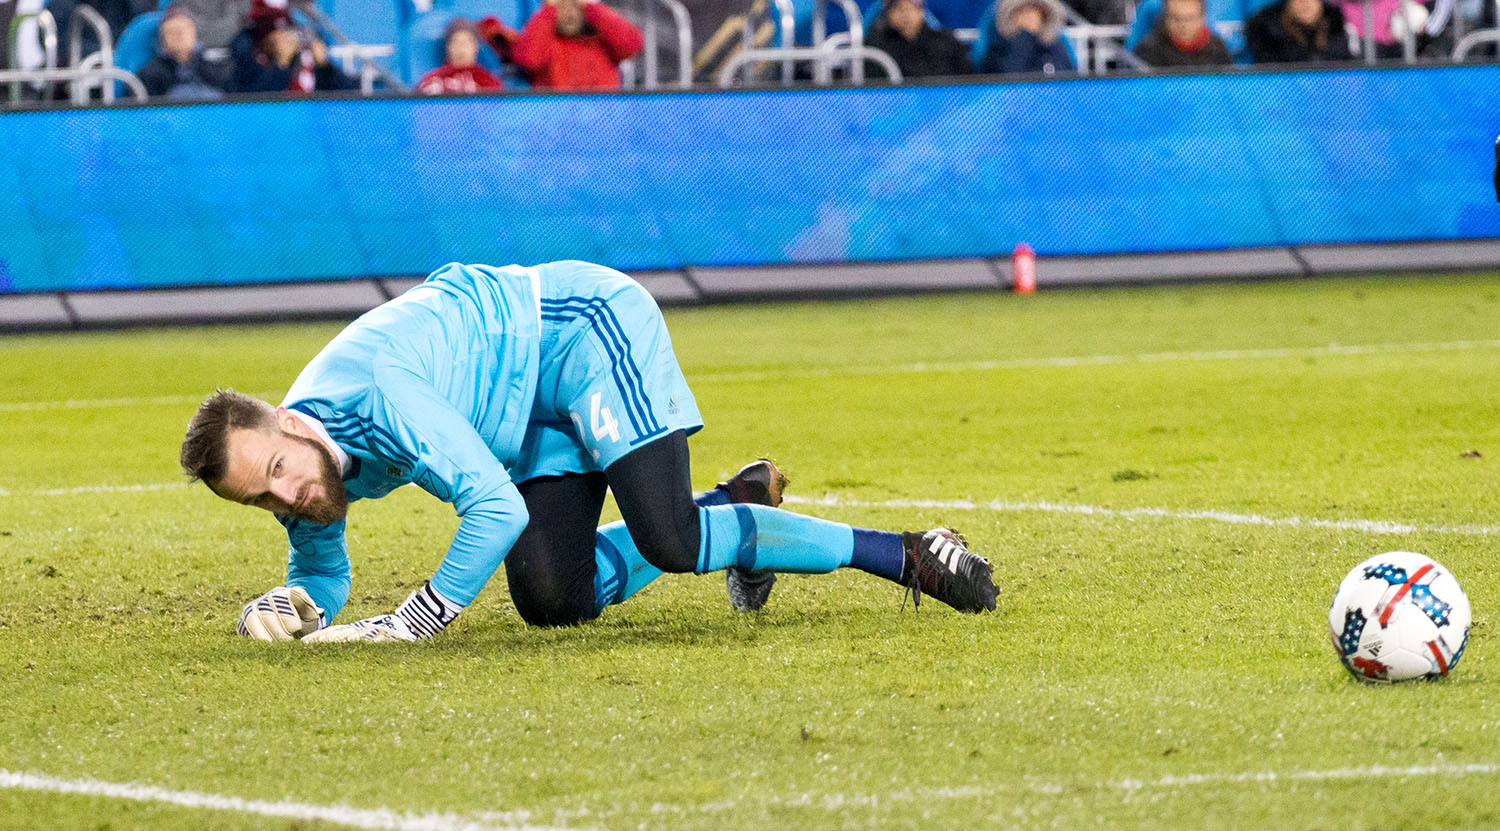 Stefan Frei (former Toronto FC goalkeeper) watching the ball clear his box after a save during the 2017 Major League Soccer Cup Final at BMO Field.Image by Dennis Marciniak of denMAR Media.